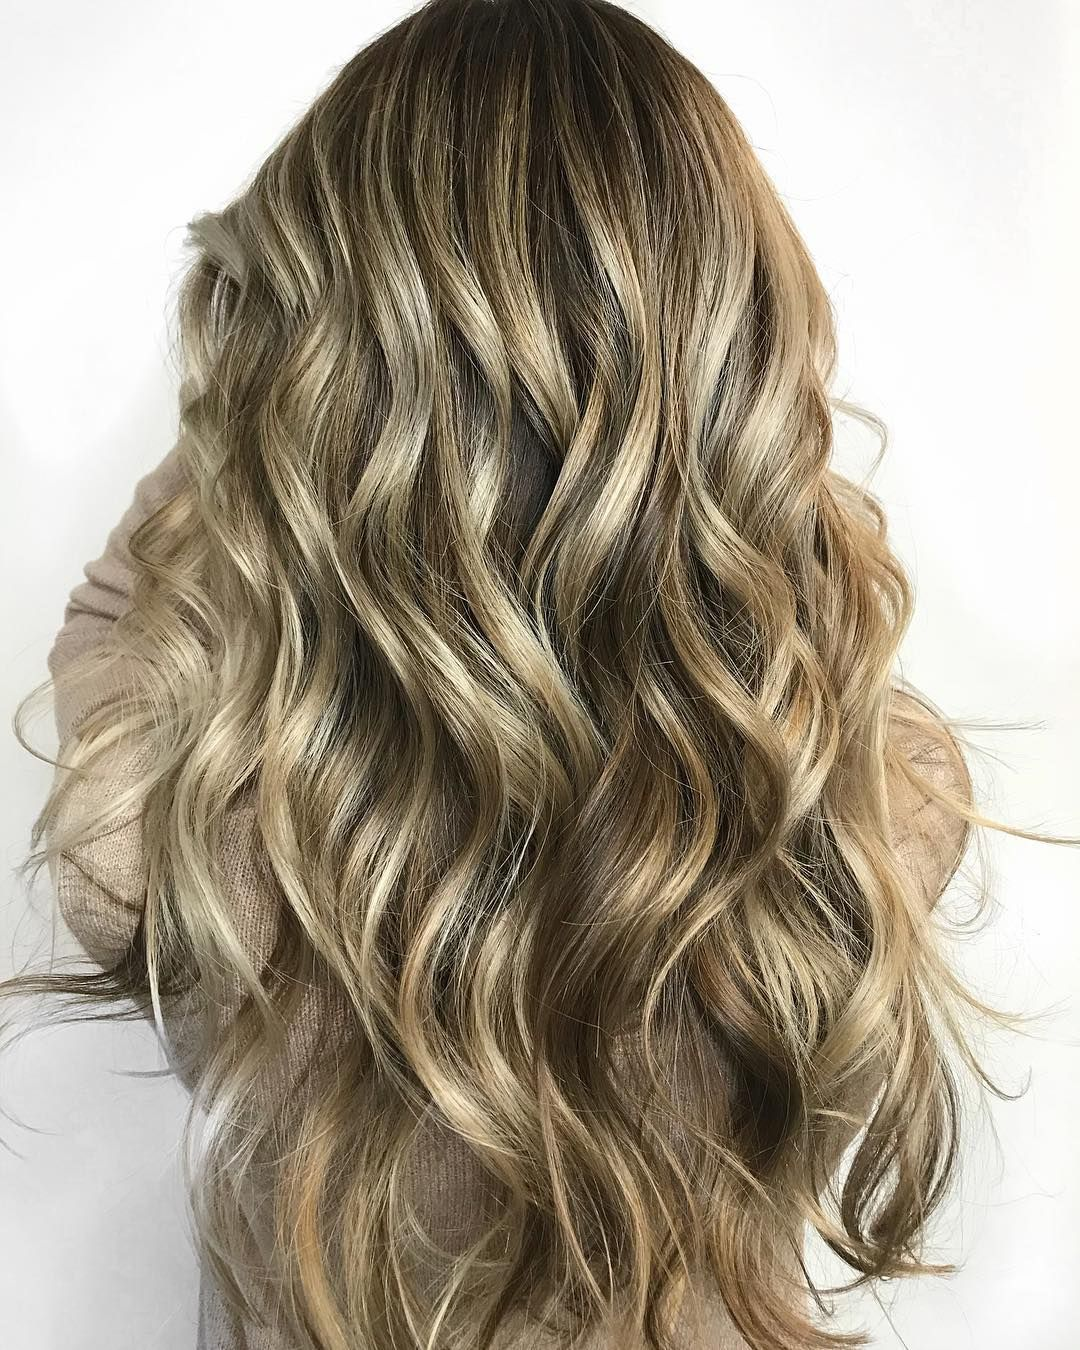 44 Balayage Hair Color Ideas With Blonde